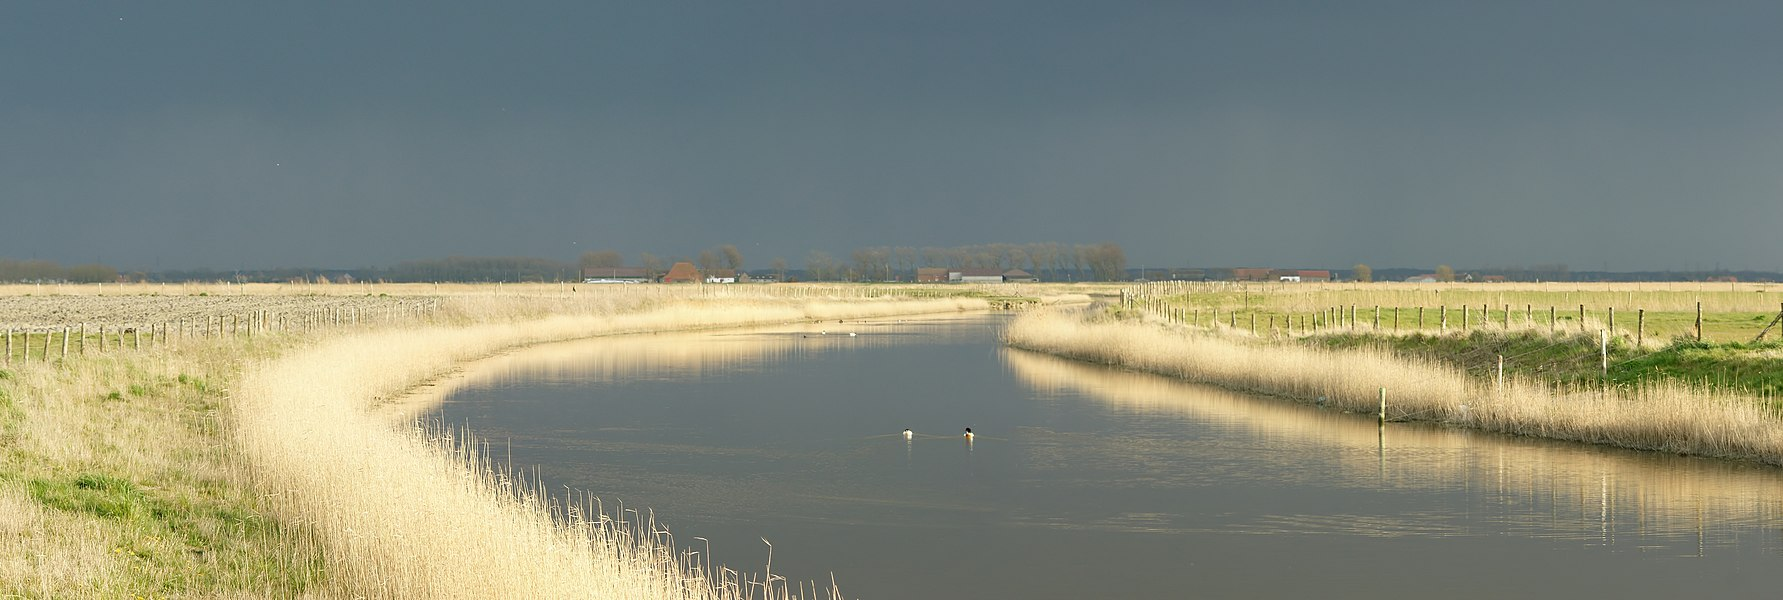 View on te Blankenbergse Vaart at the Uitkerkse Polders, Blankenberge, Belgium